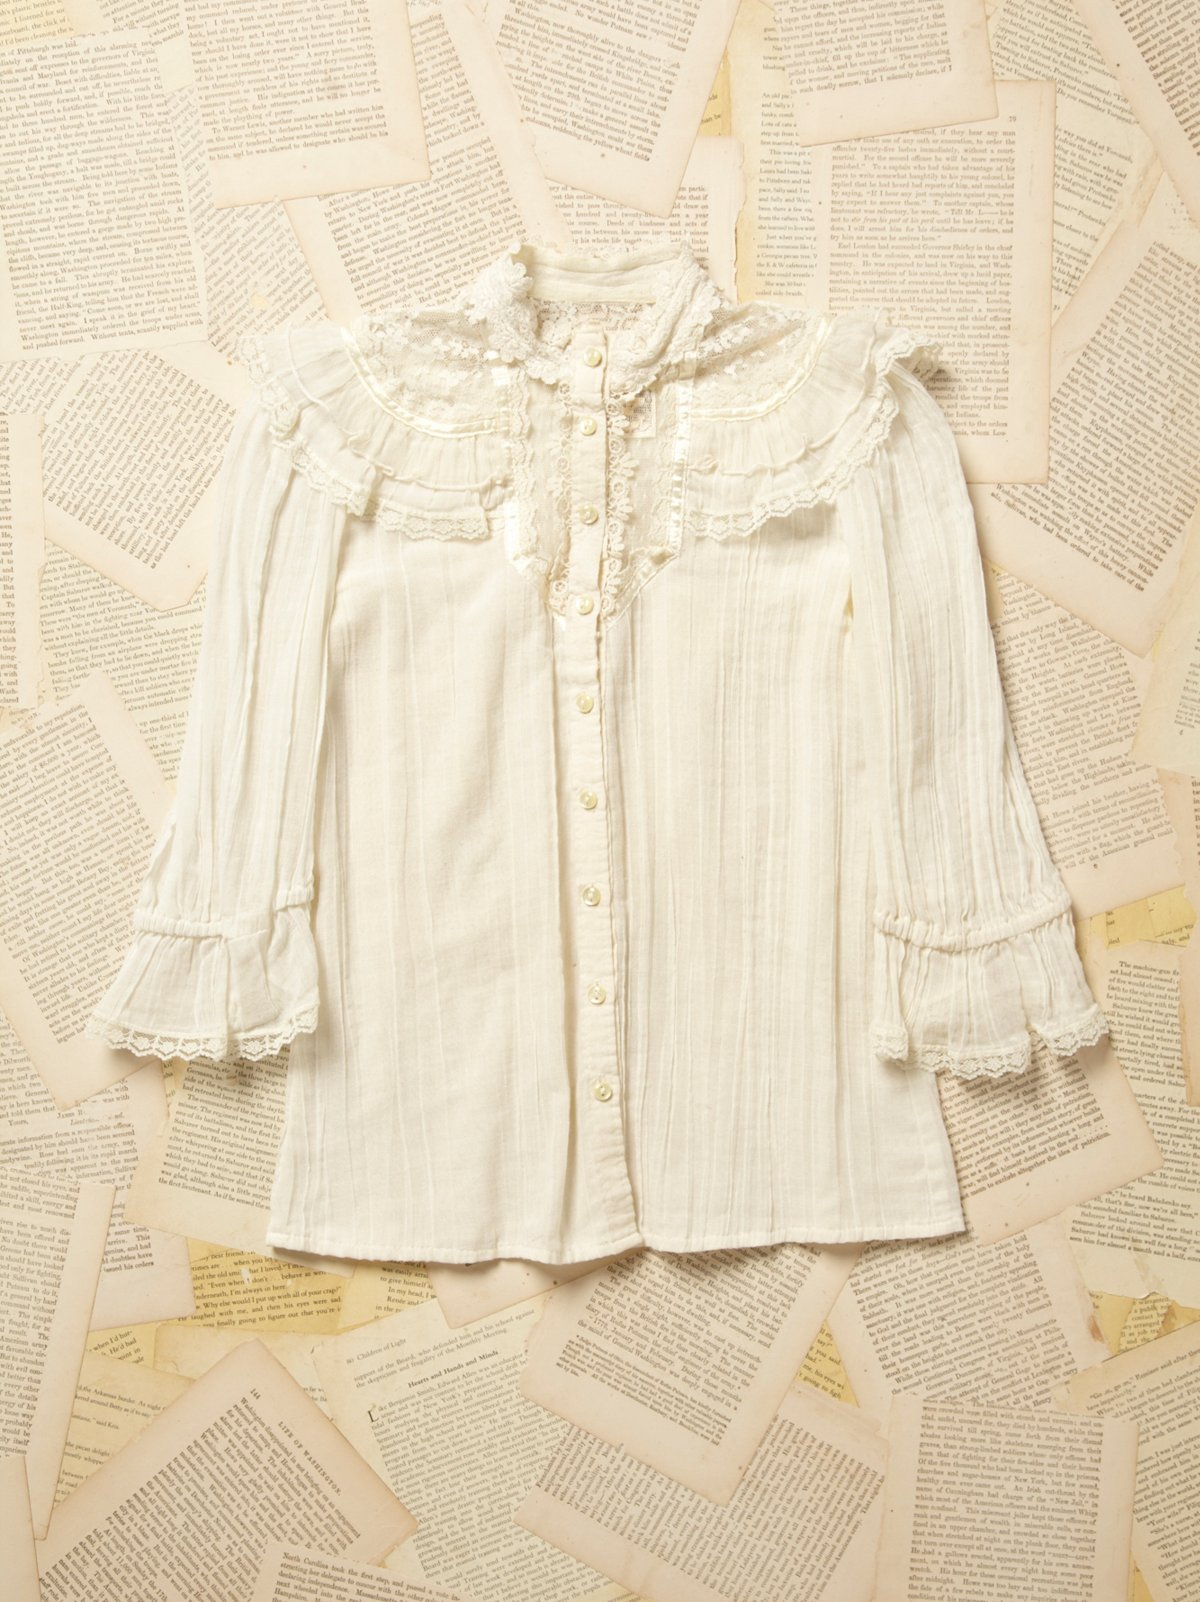 Vintage 1970s Cotton and Lace Blouse